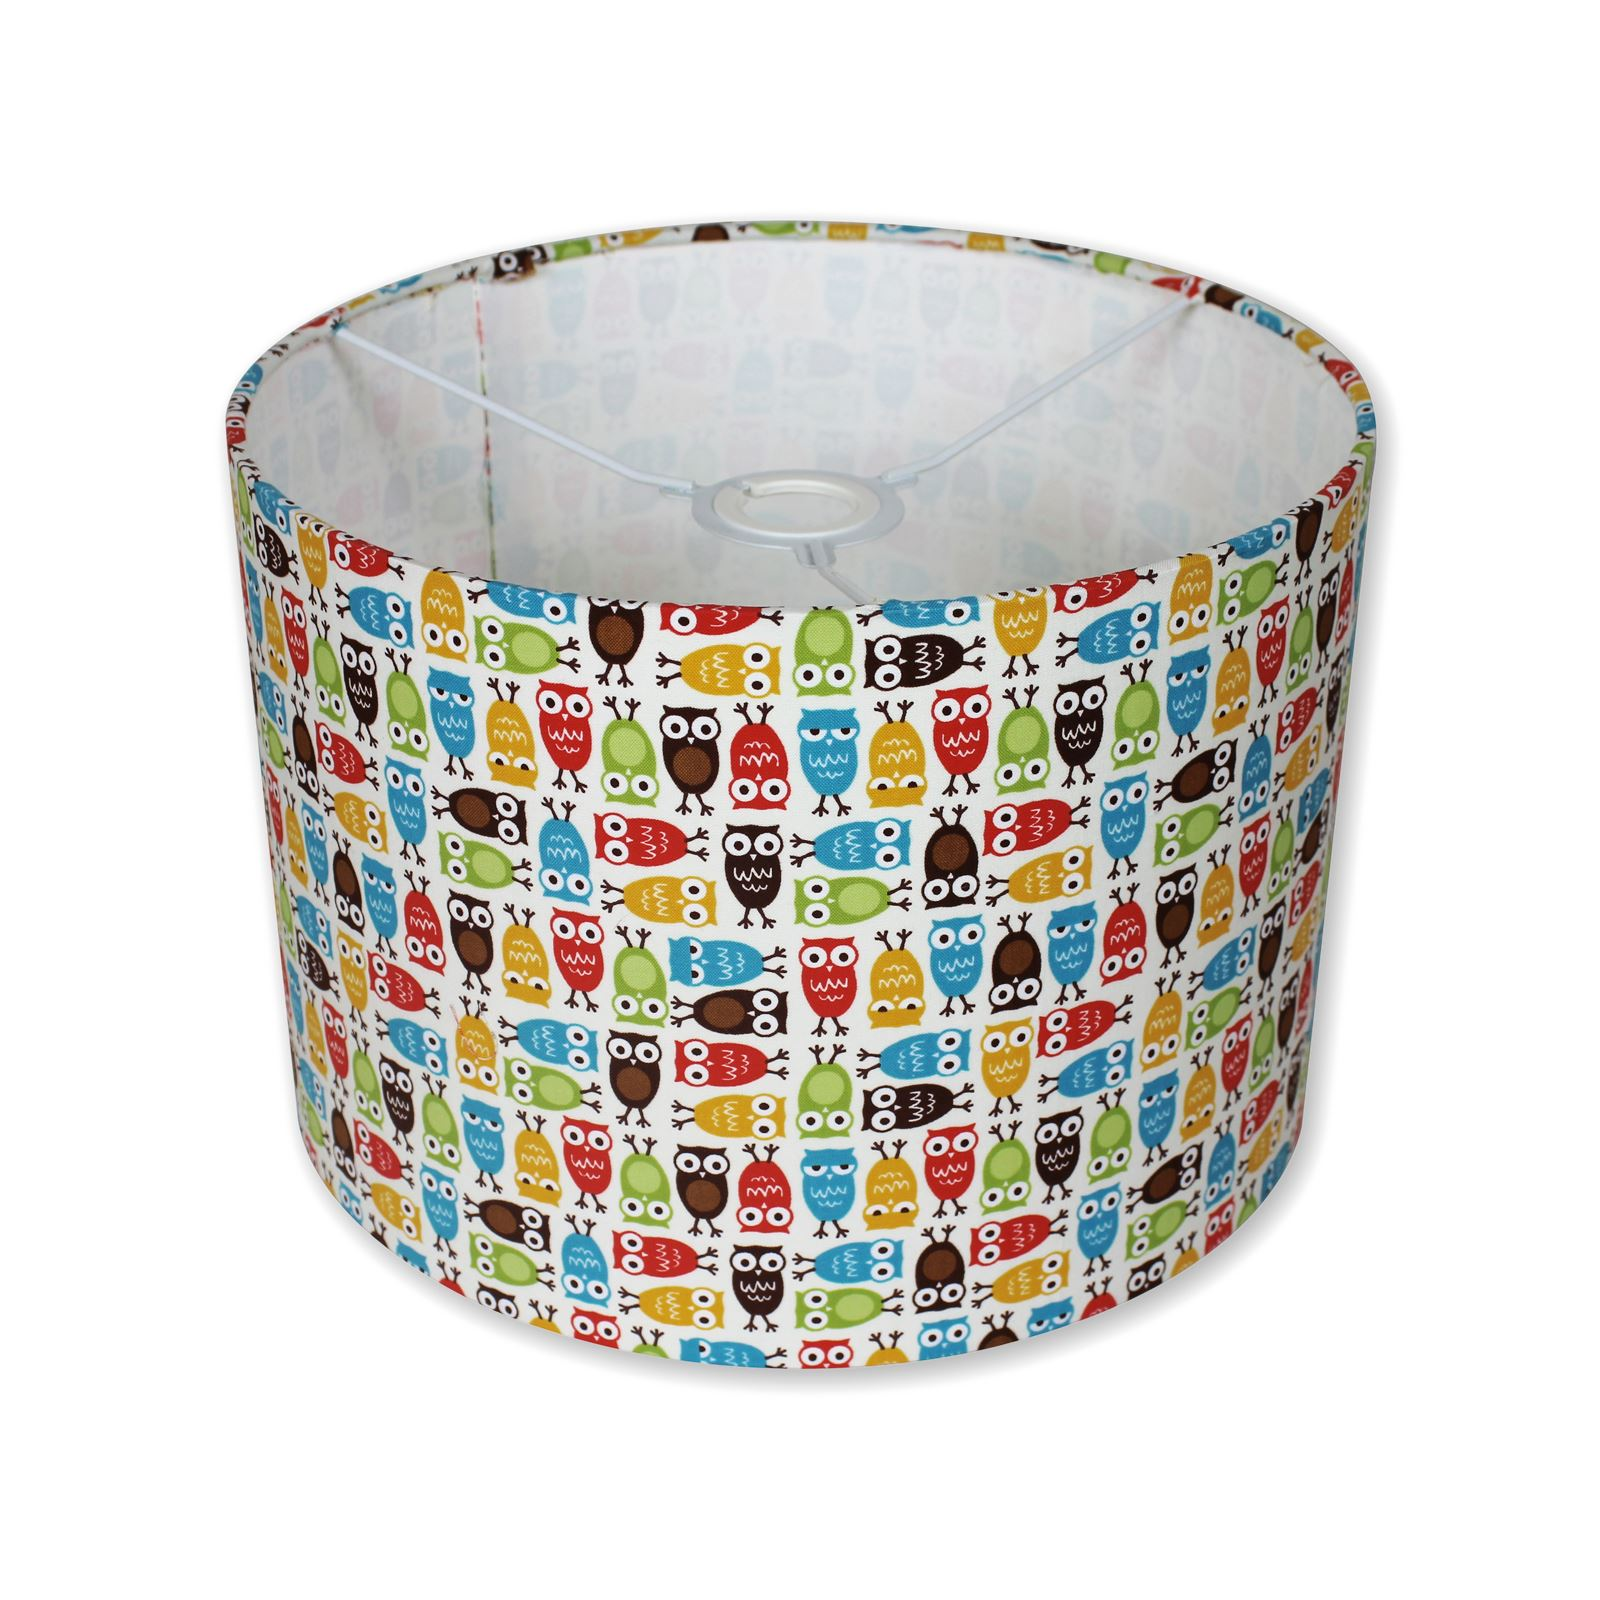 Lampshade kits make your own lampshades 20cm30cm40cm diameter lampshade kits make your own lampshades 20cm 30cm aloadofball Choice Image